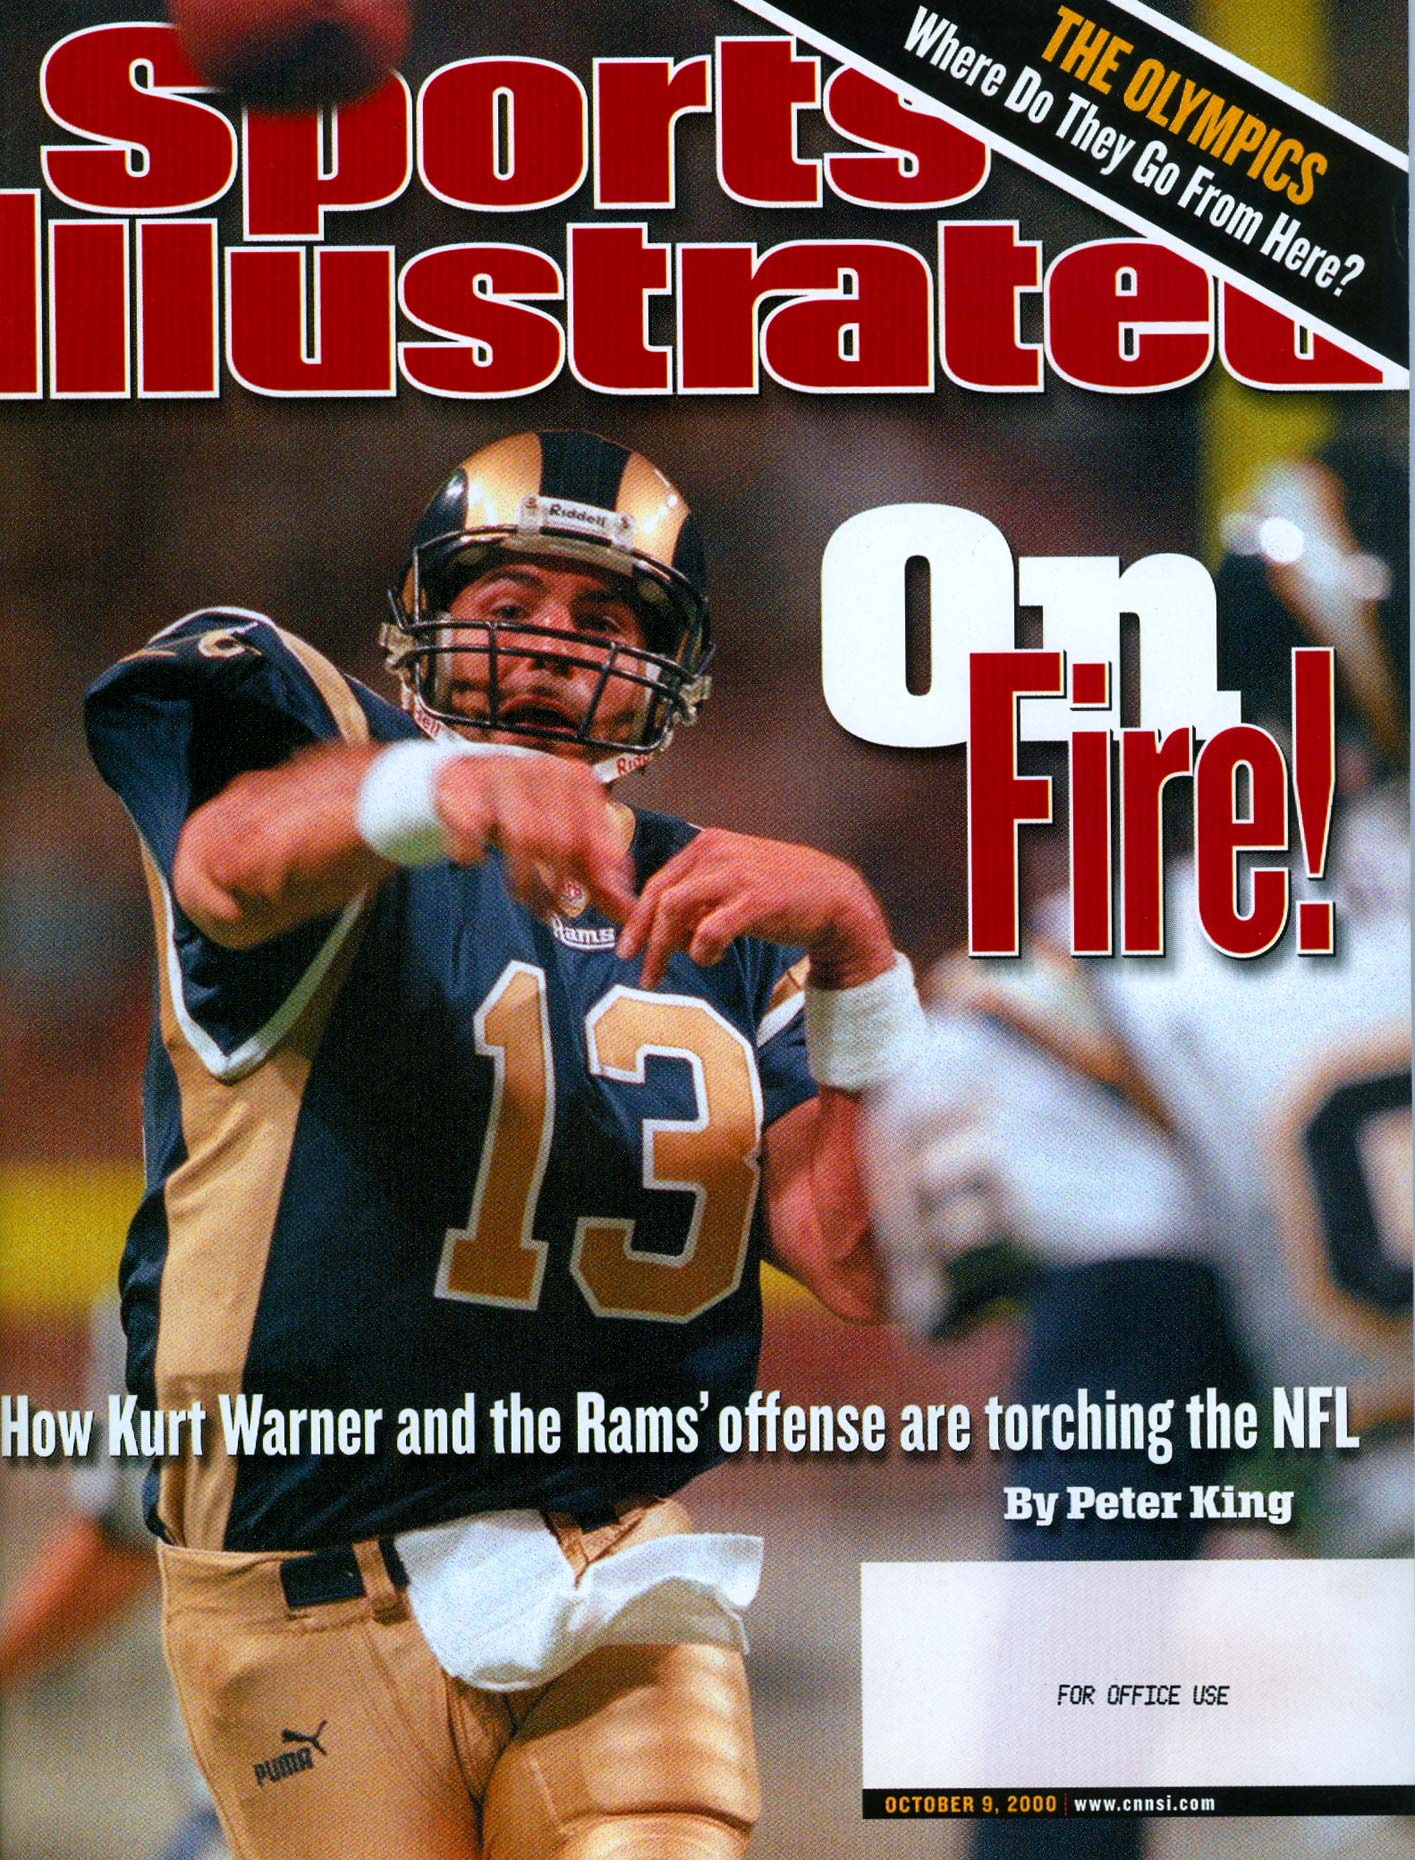 Saint Louis Rams quarterback Kurt Warner on the cover of Sports Illustrated.